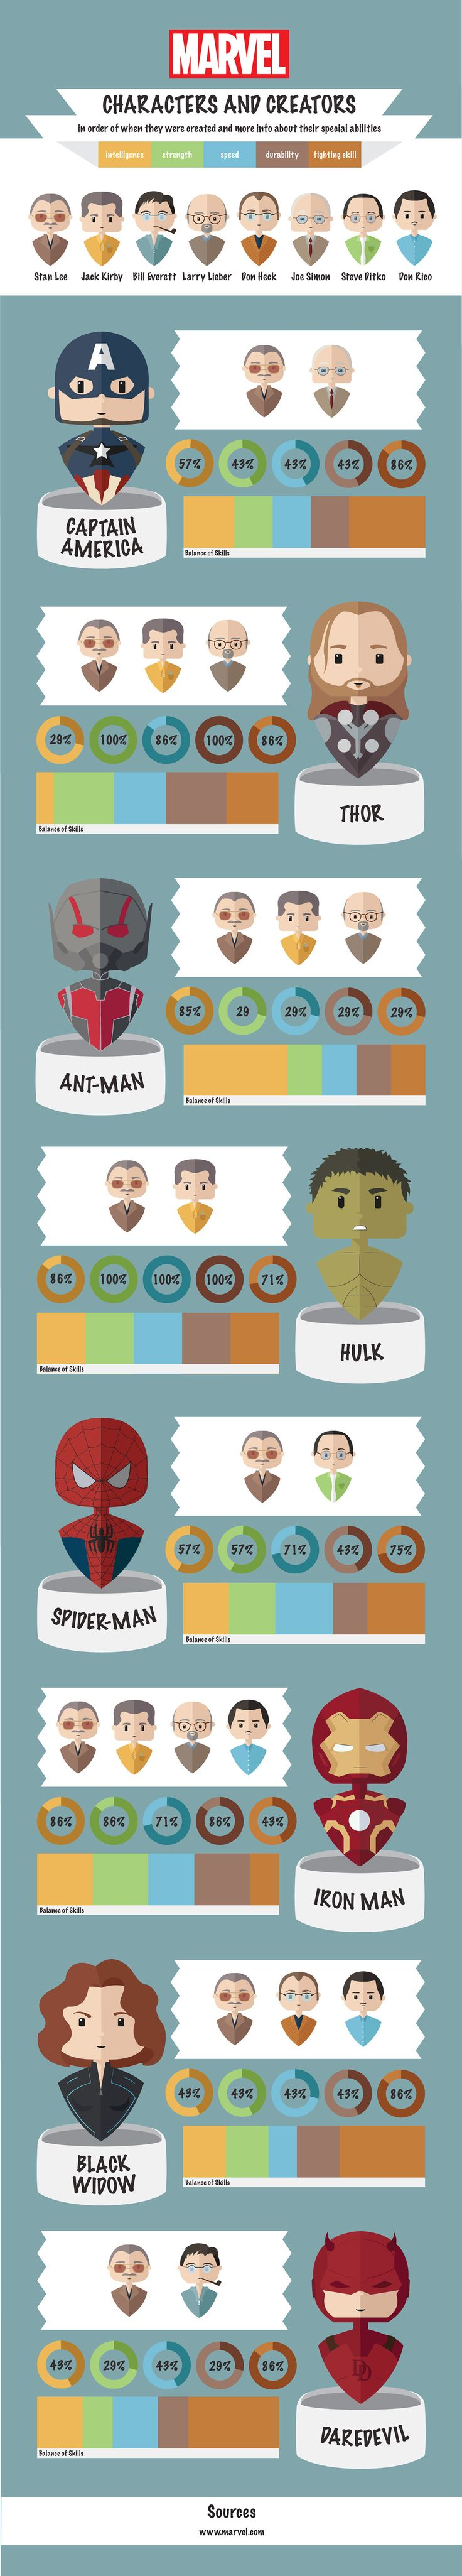 Marvel characters and their creators